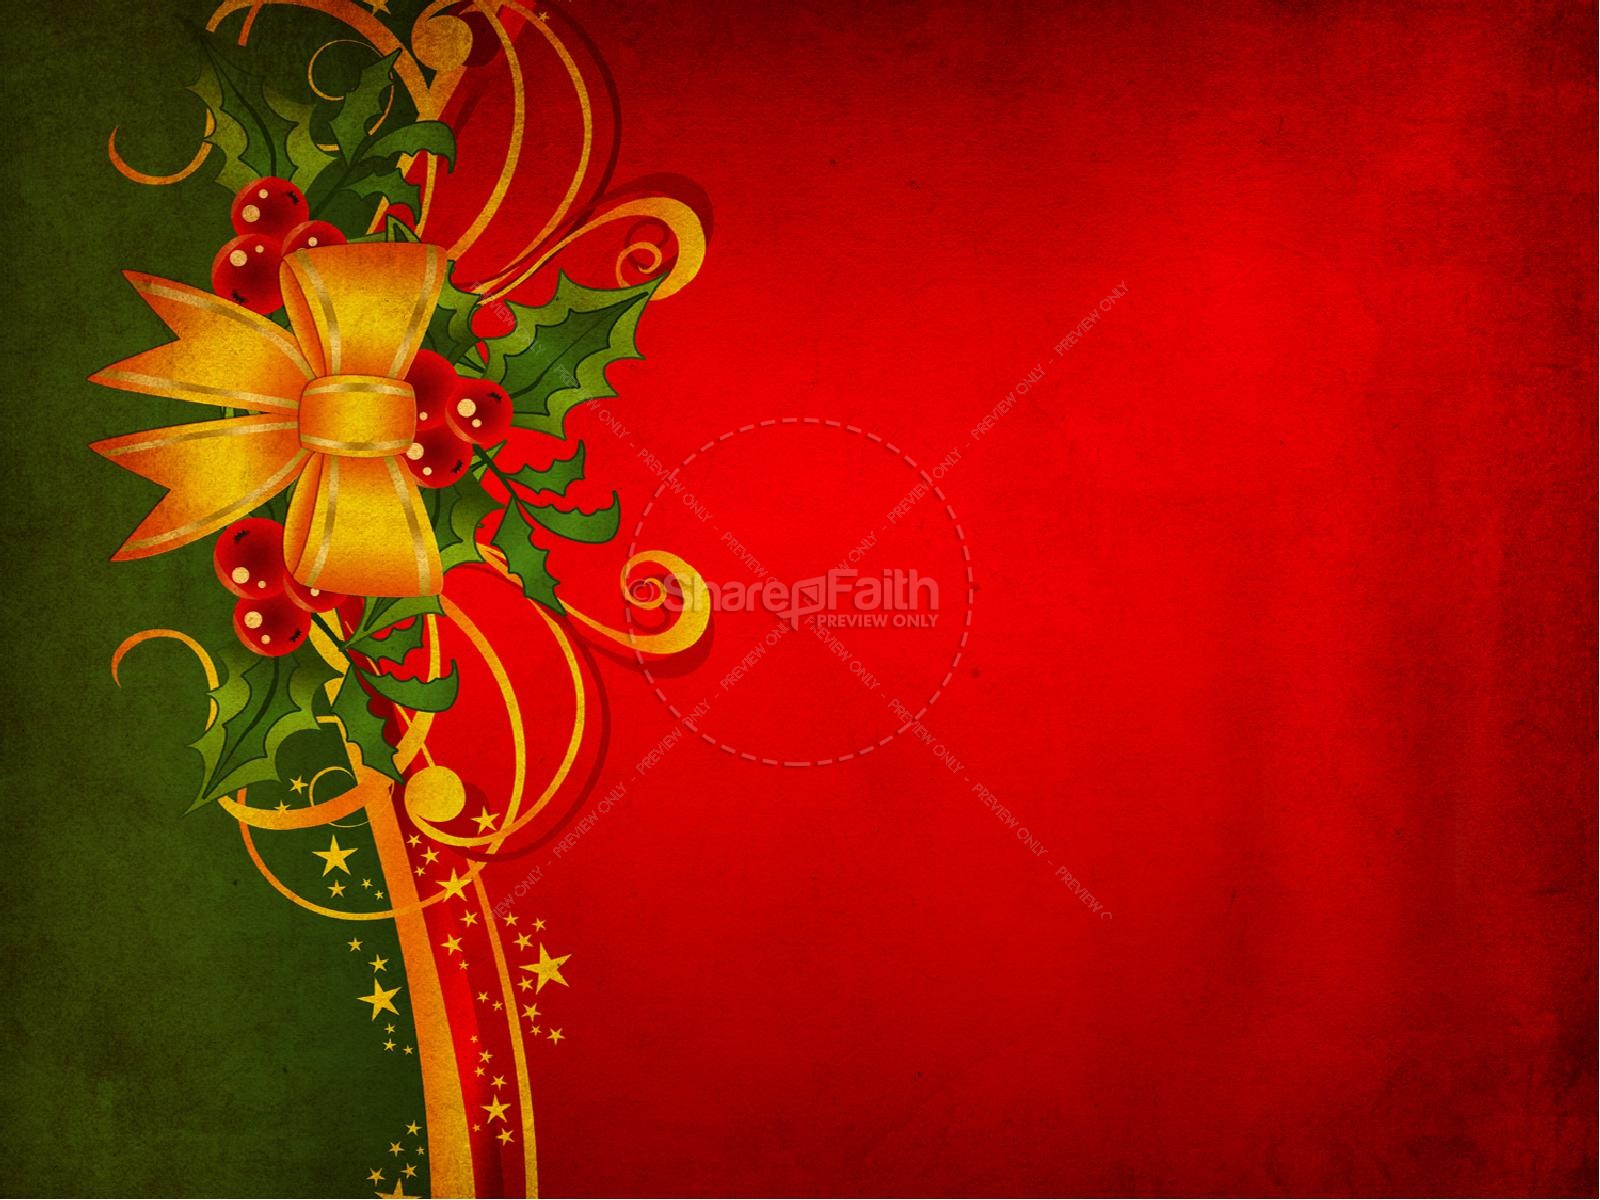 the message of christmas powerpoint | christmas powerpoints, Modern powerpoint